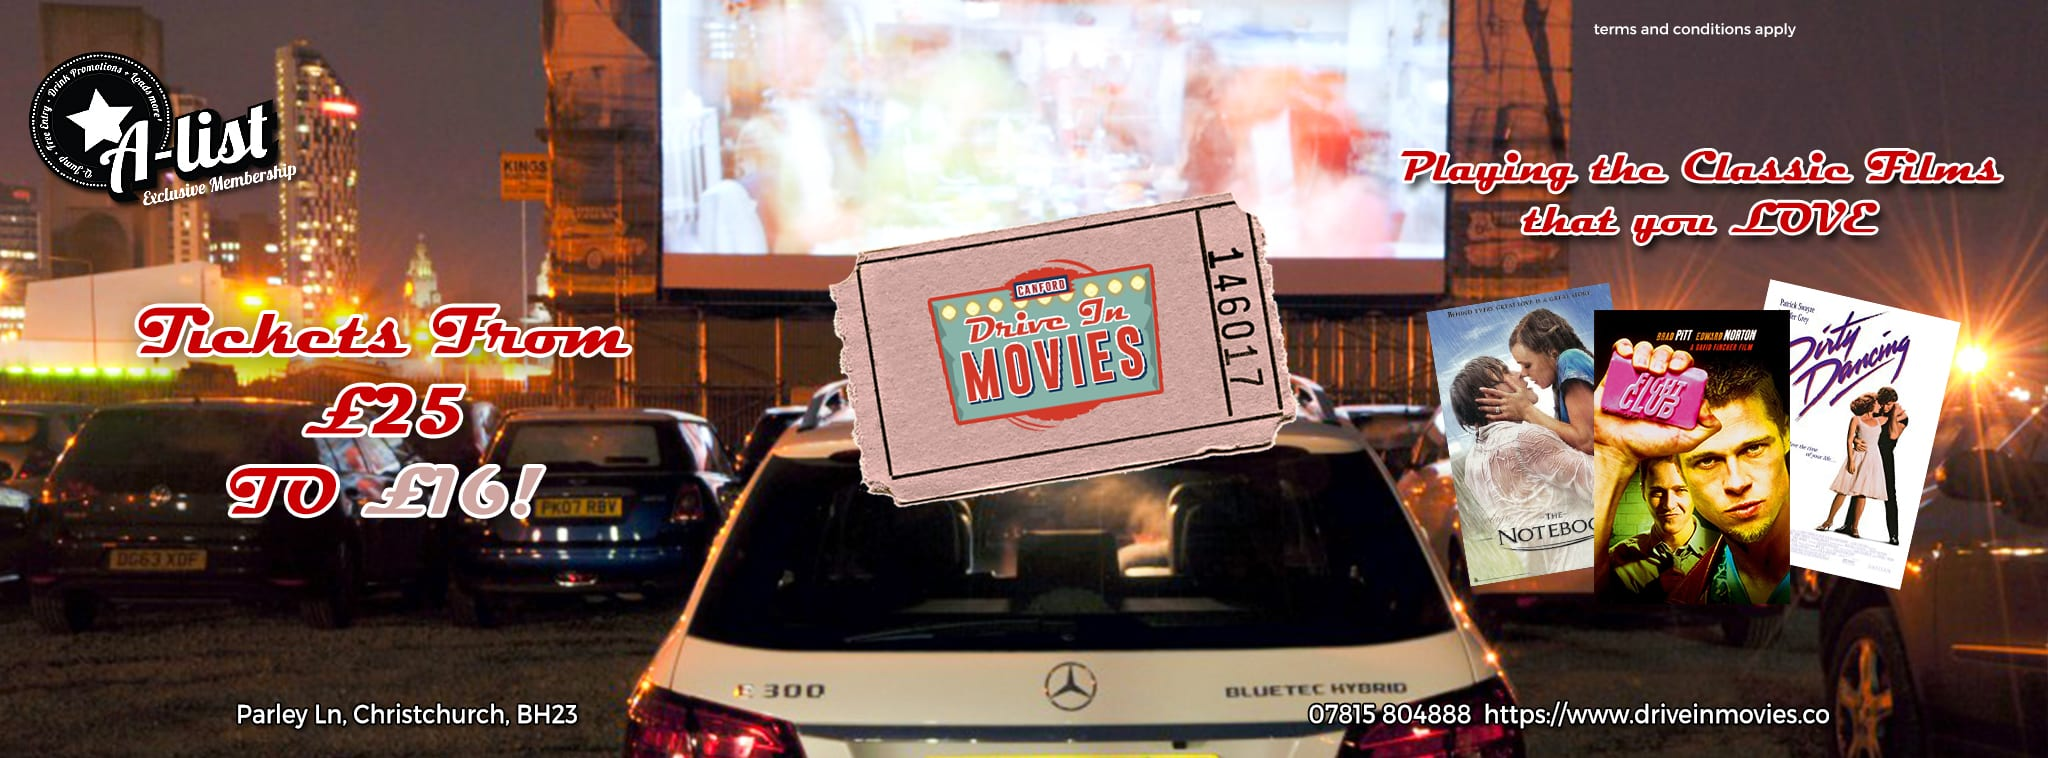 Drive In Movies Co.